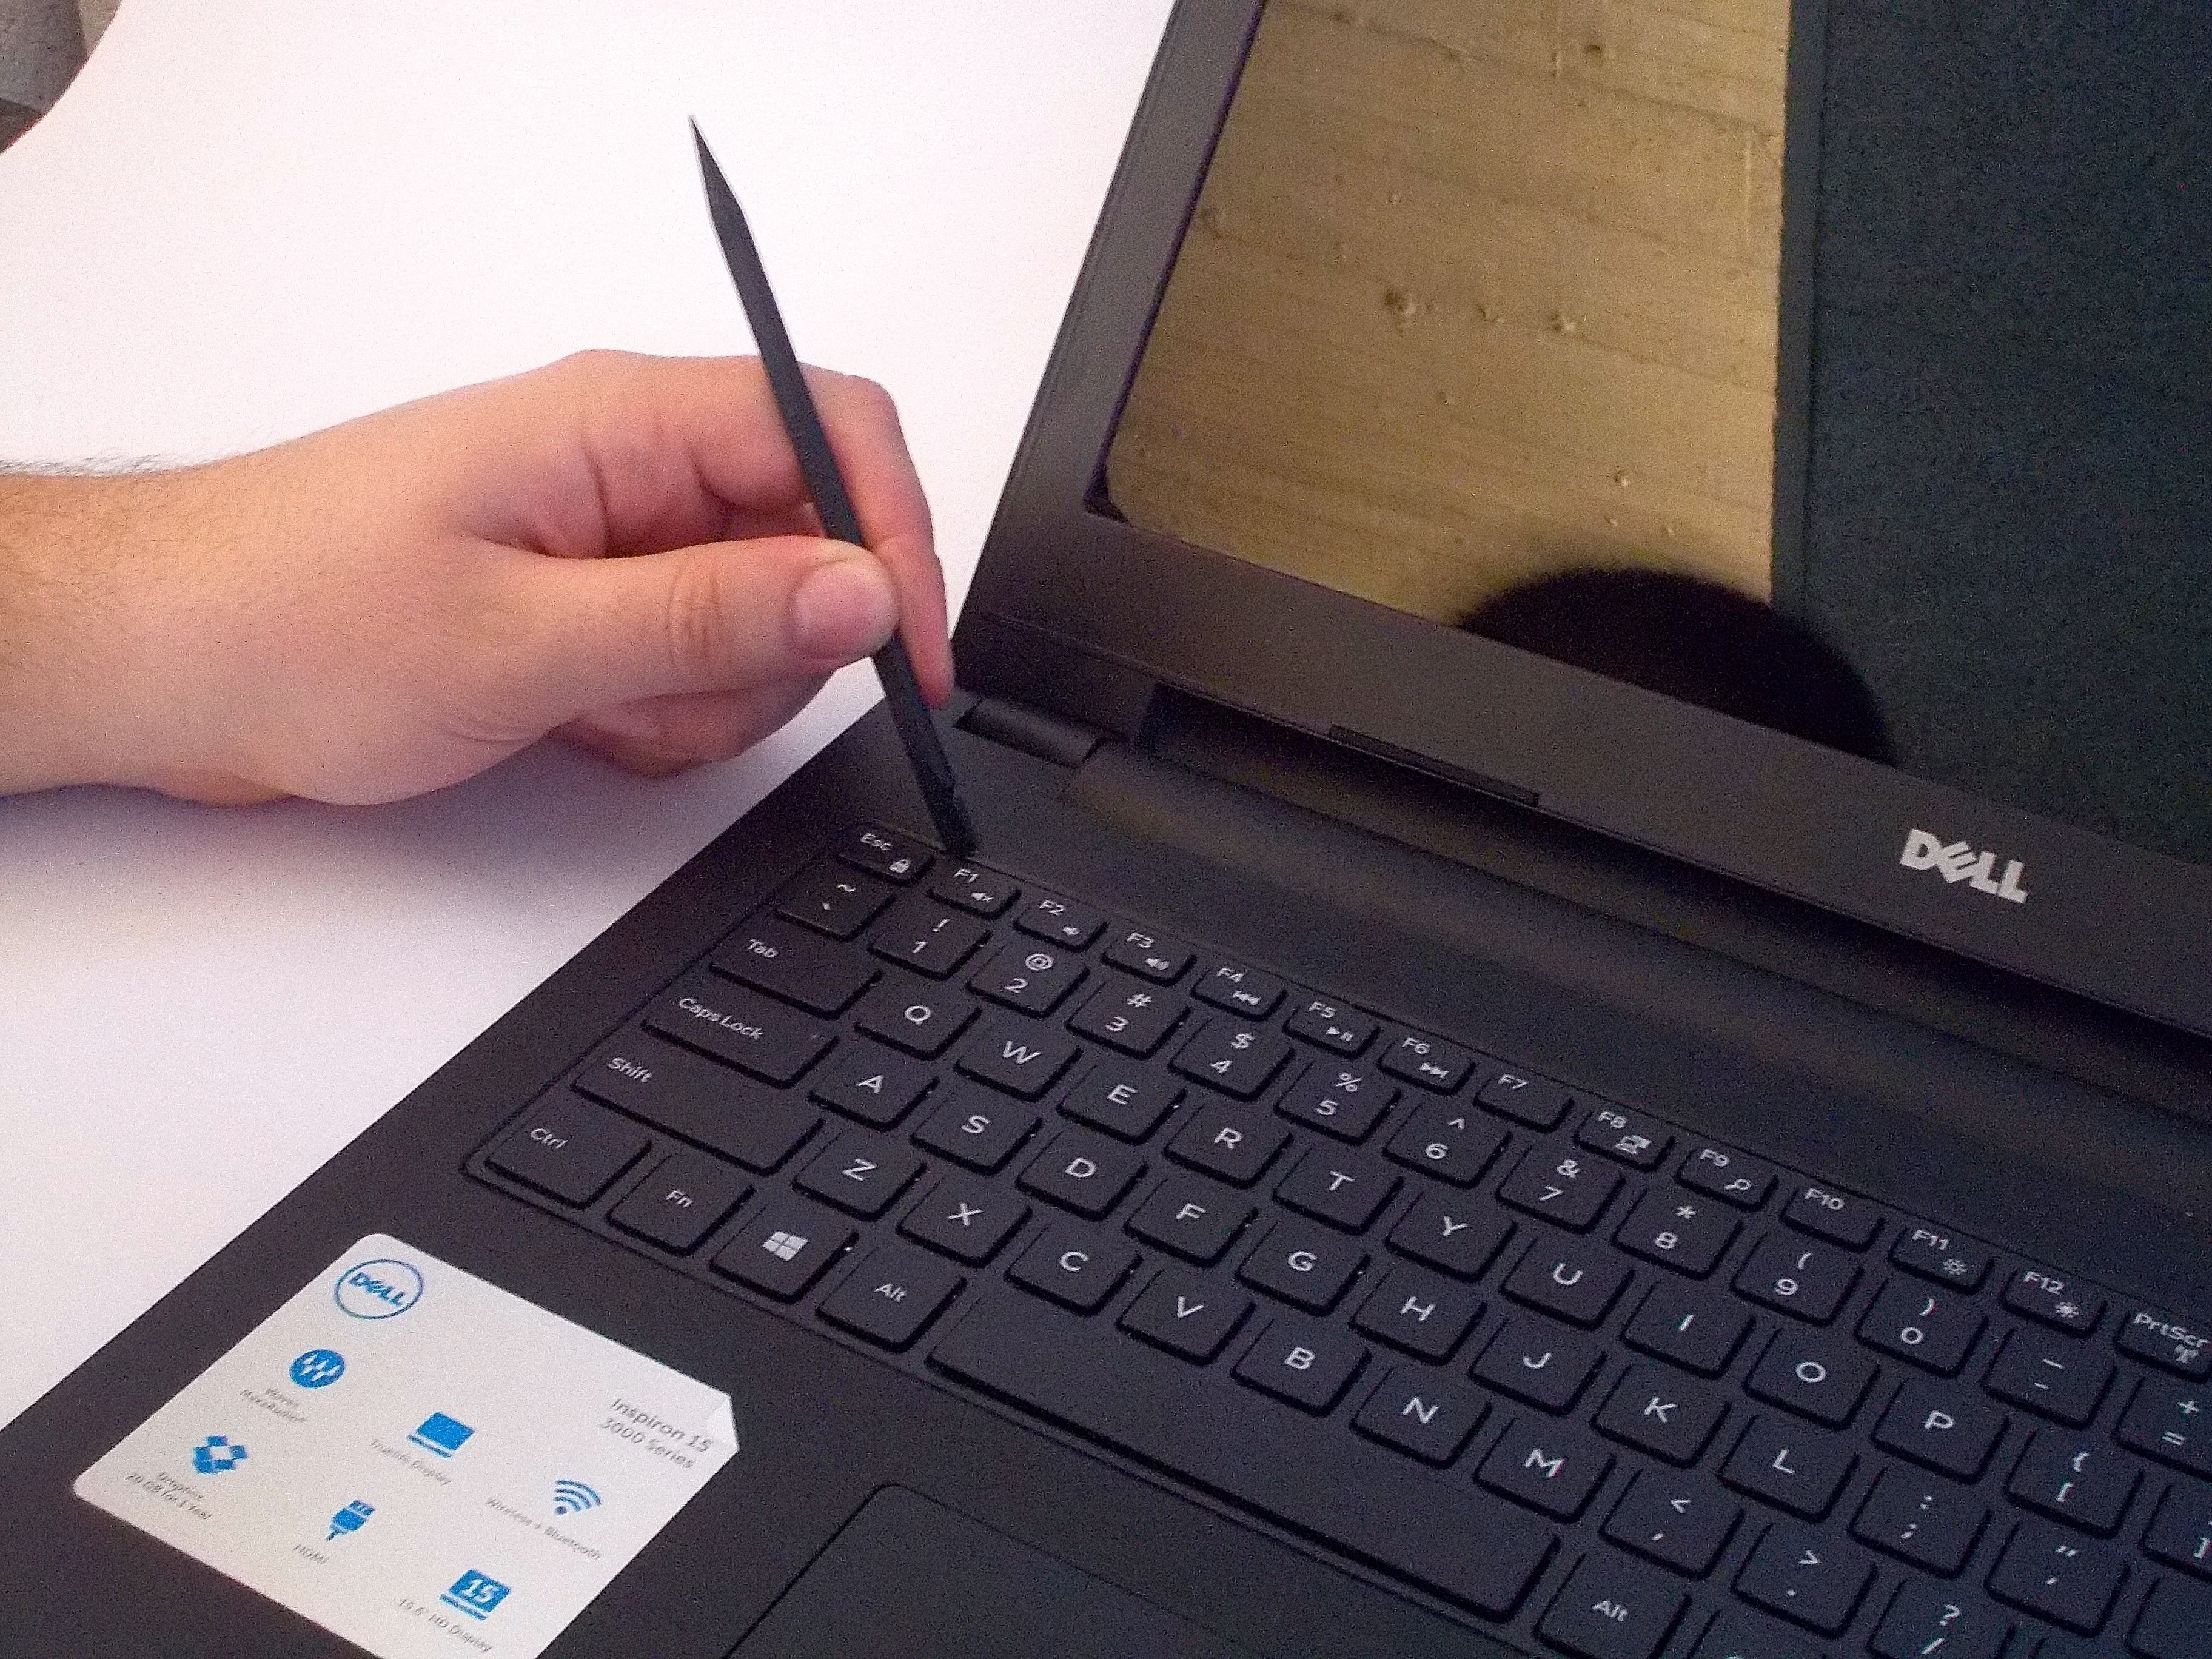 Dell Inspiron 15 3541 Keyboard Replacement - iFixit Repair Guide